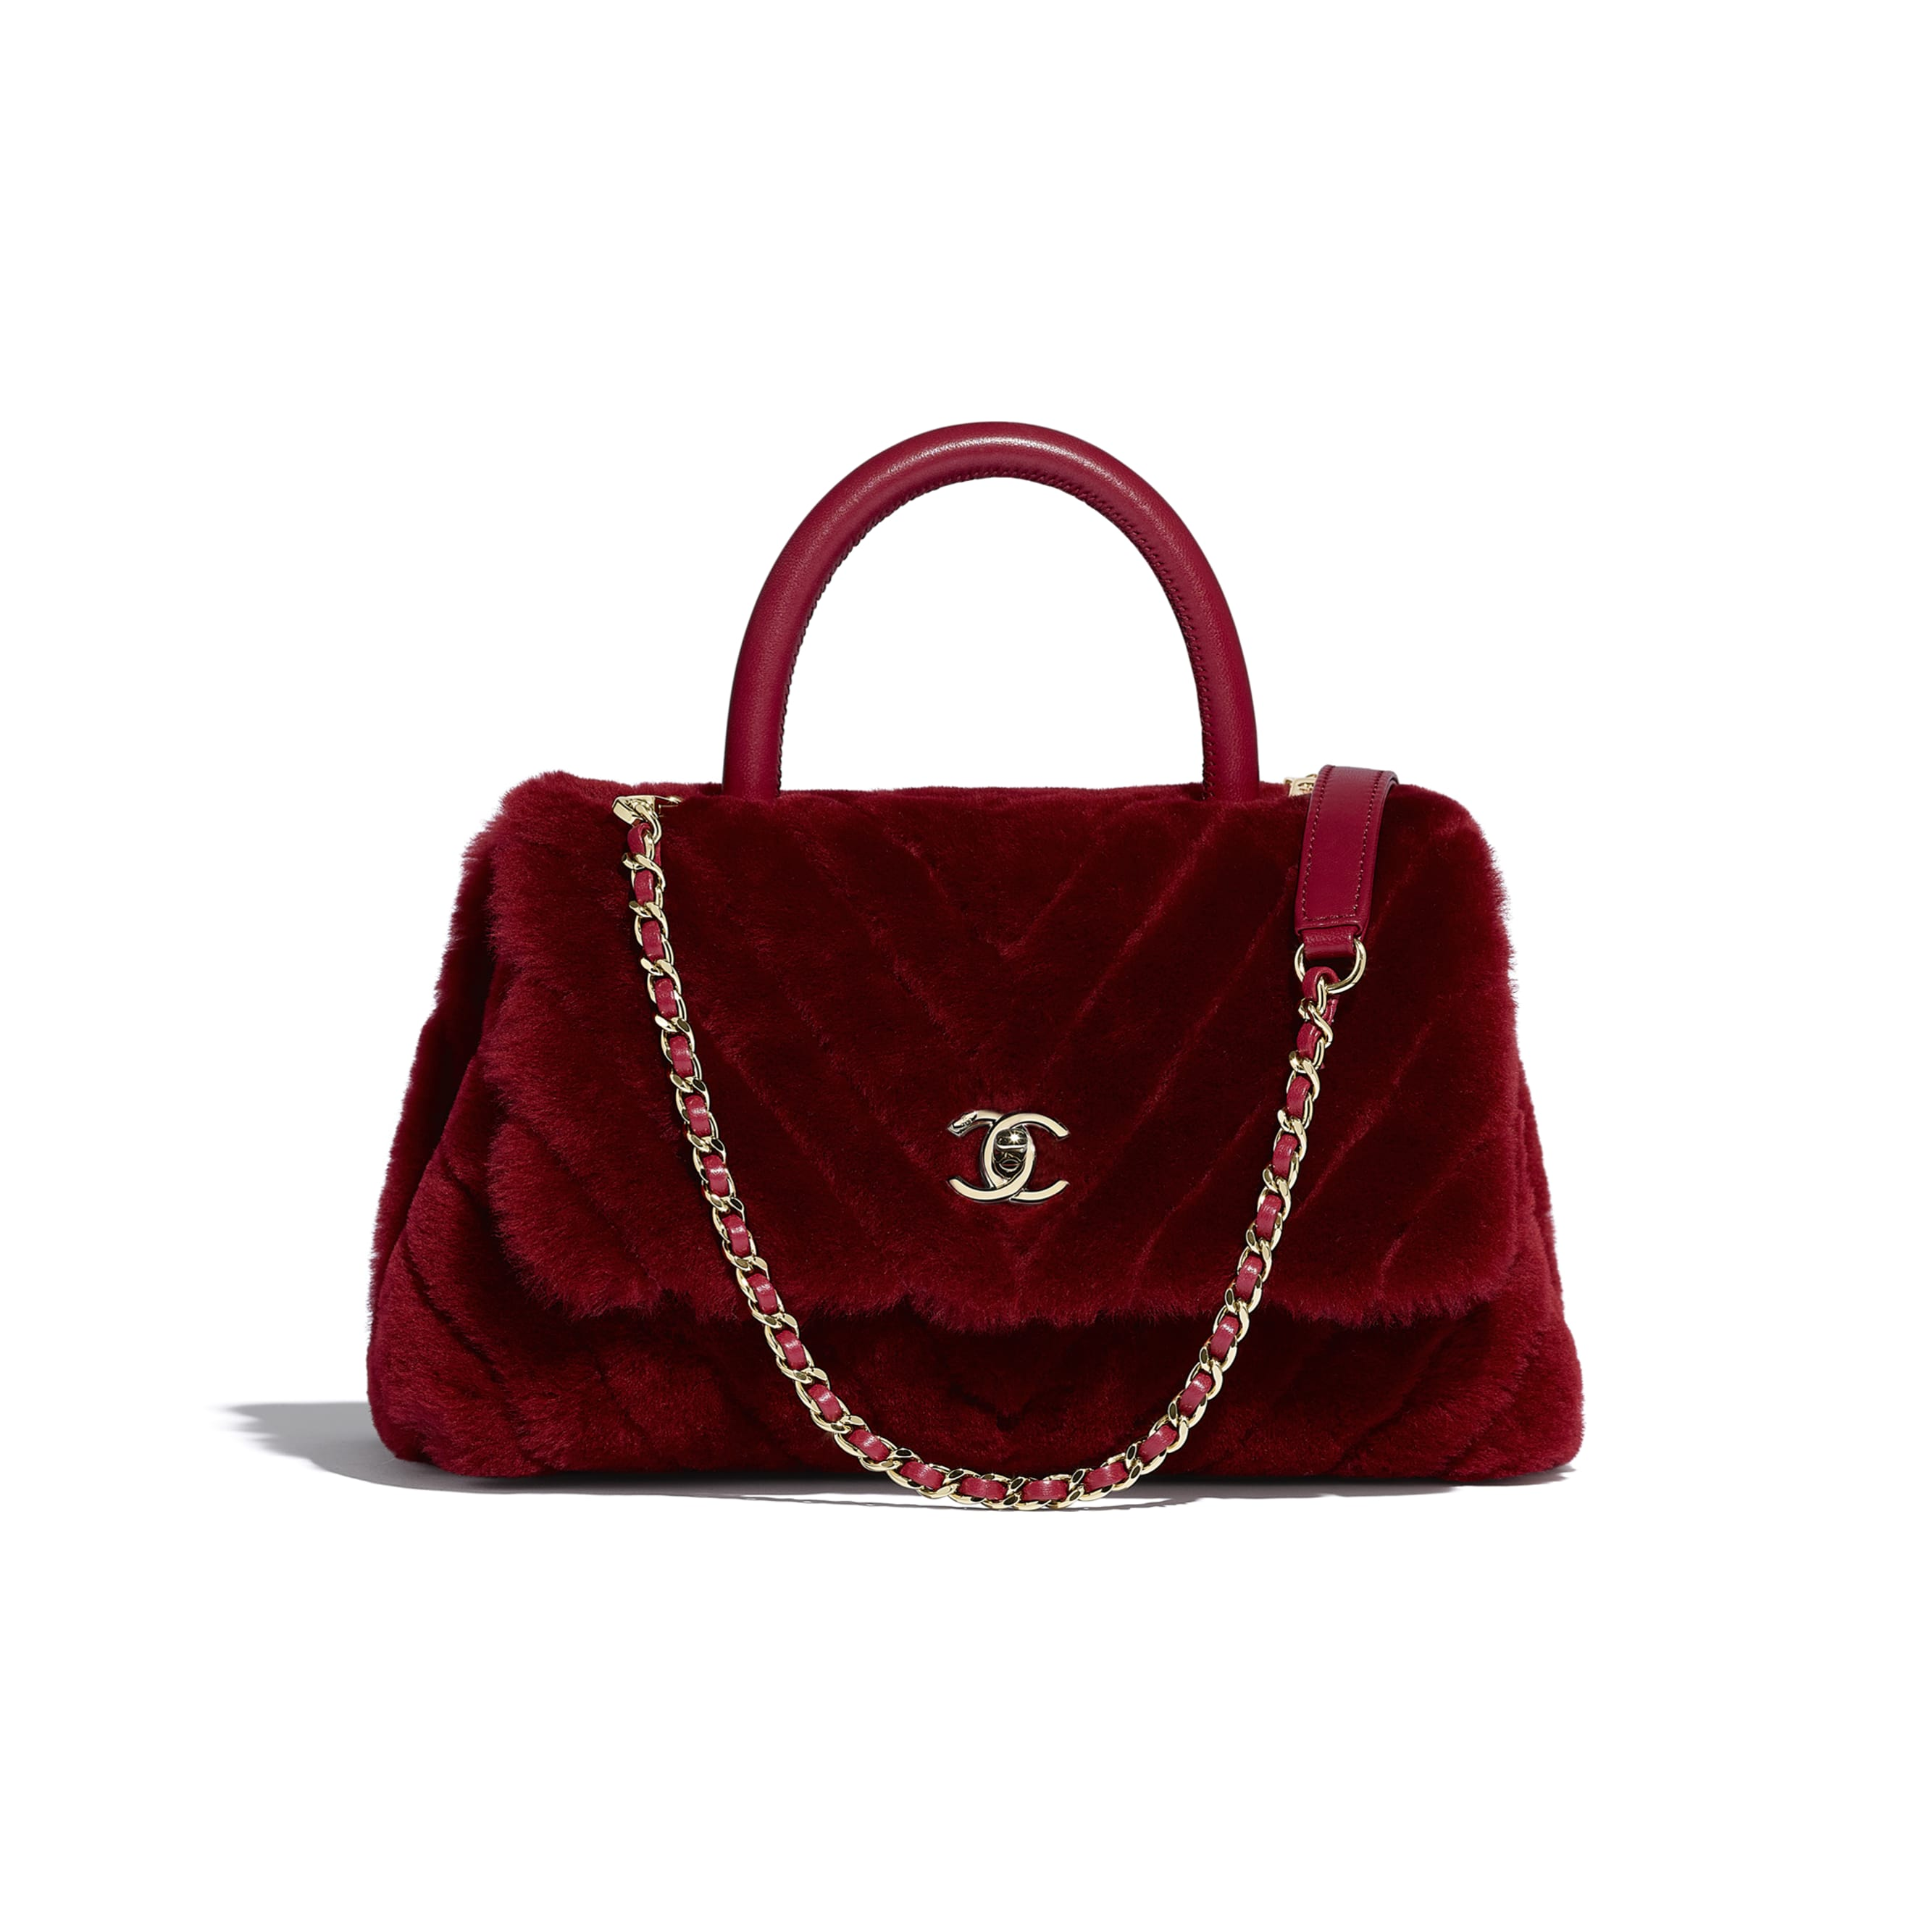 Small Flap Bag With Top Handle - Burgundy - Shearling Lambskin, Lambskin &Gold-Tone Metal - Default view - see standard sized version